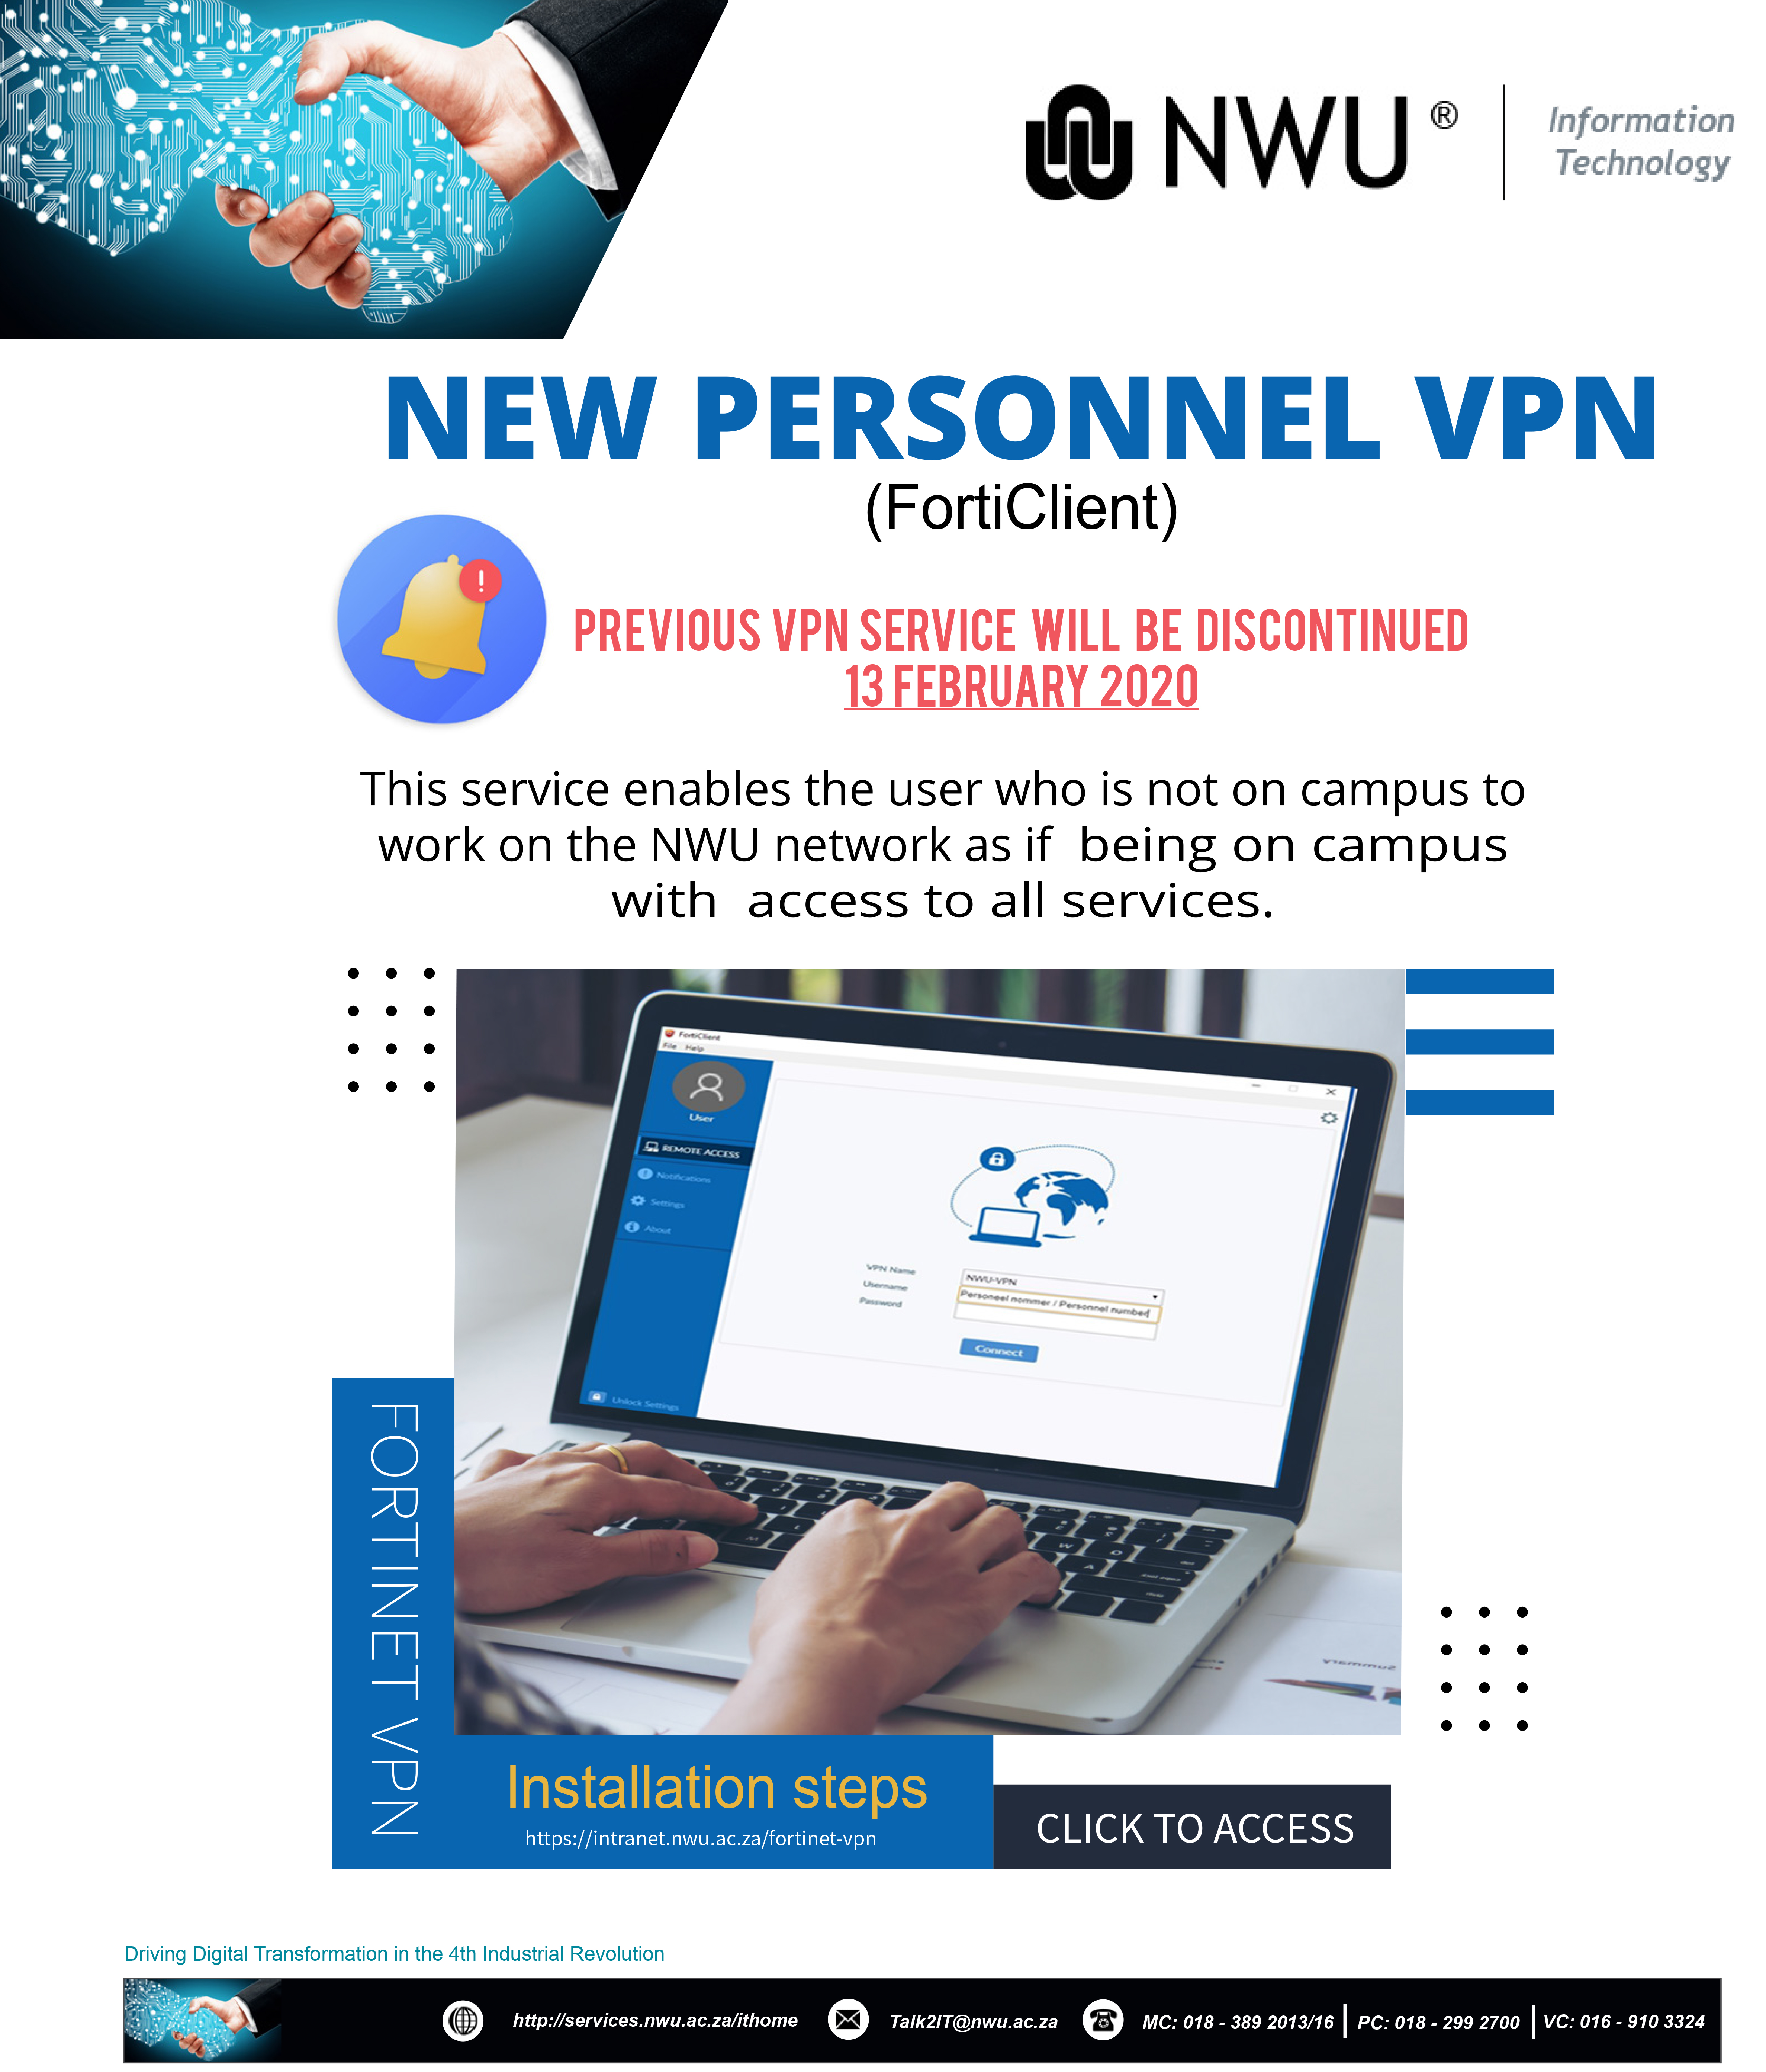 NEW PERSONNEL VPN (FortiClient)